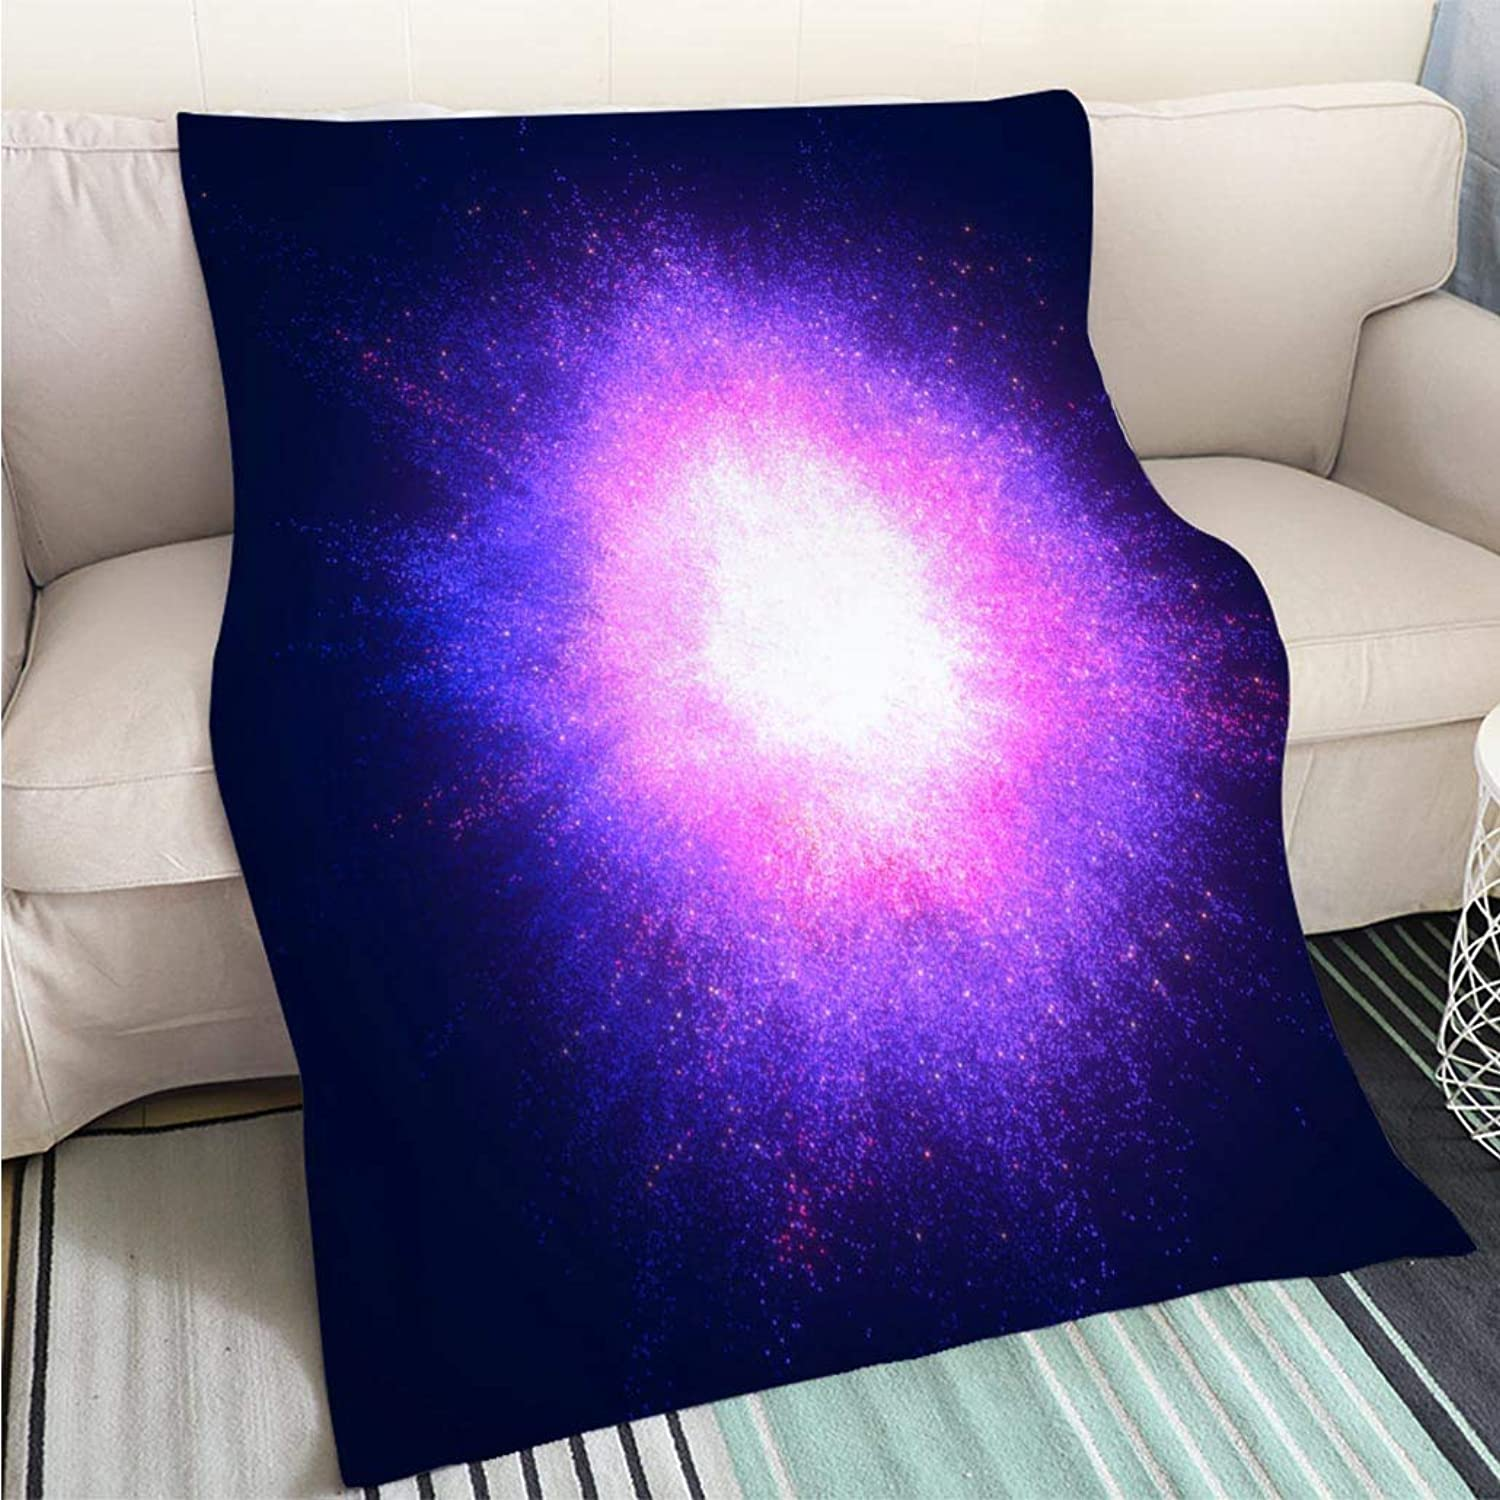 Art Design Photos Cool Quilt Burst Background Astrology Explosion Galaxy Perfect for Couch Sofa or Bed Cool Quilt